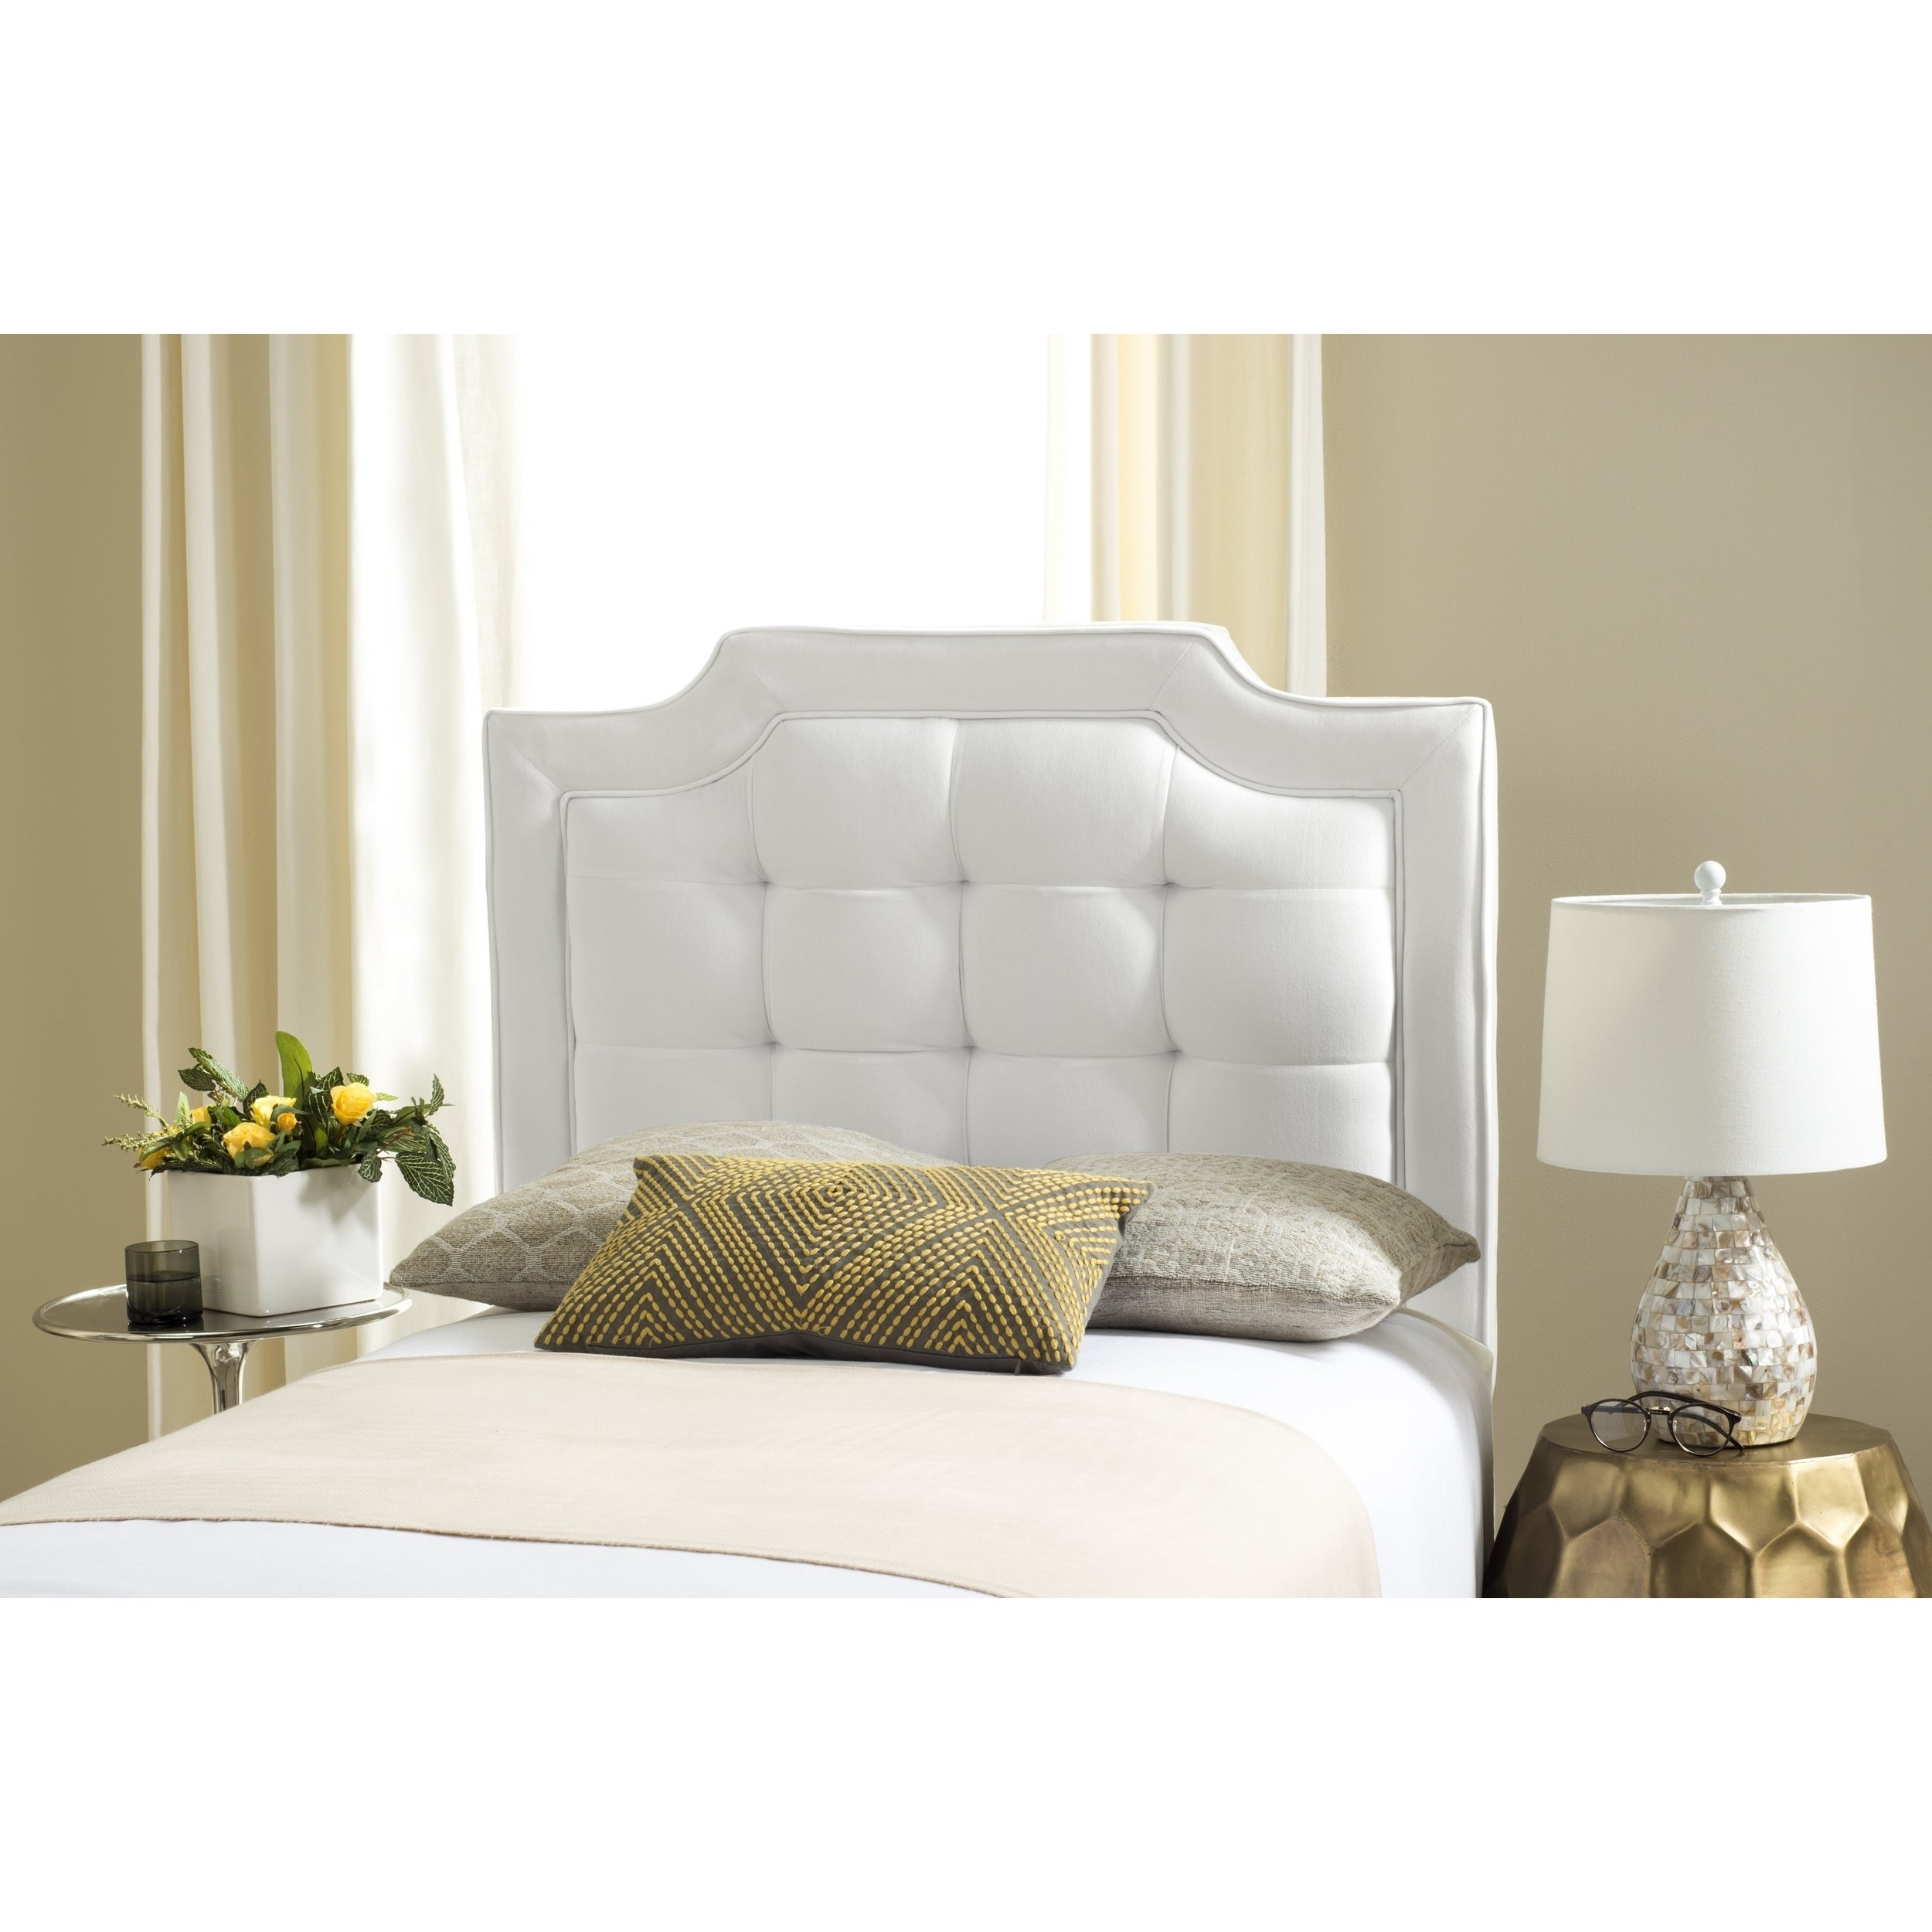 Safavieh Saphire White Upholstered Tufted Headboard Twin Ebay # Muebles Saphire